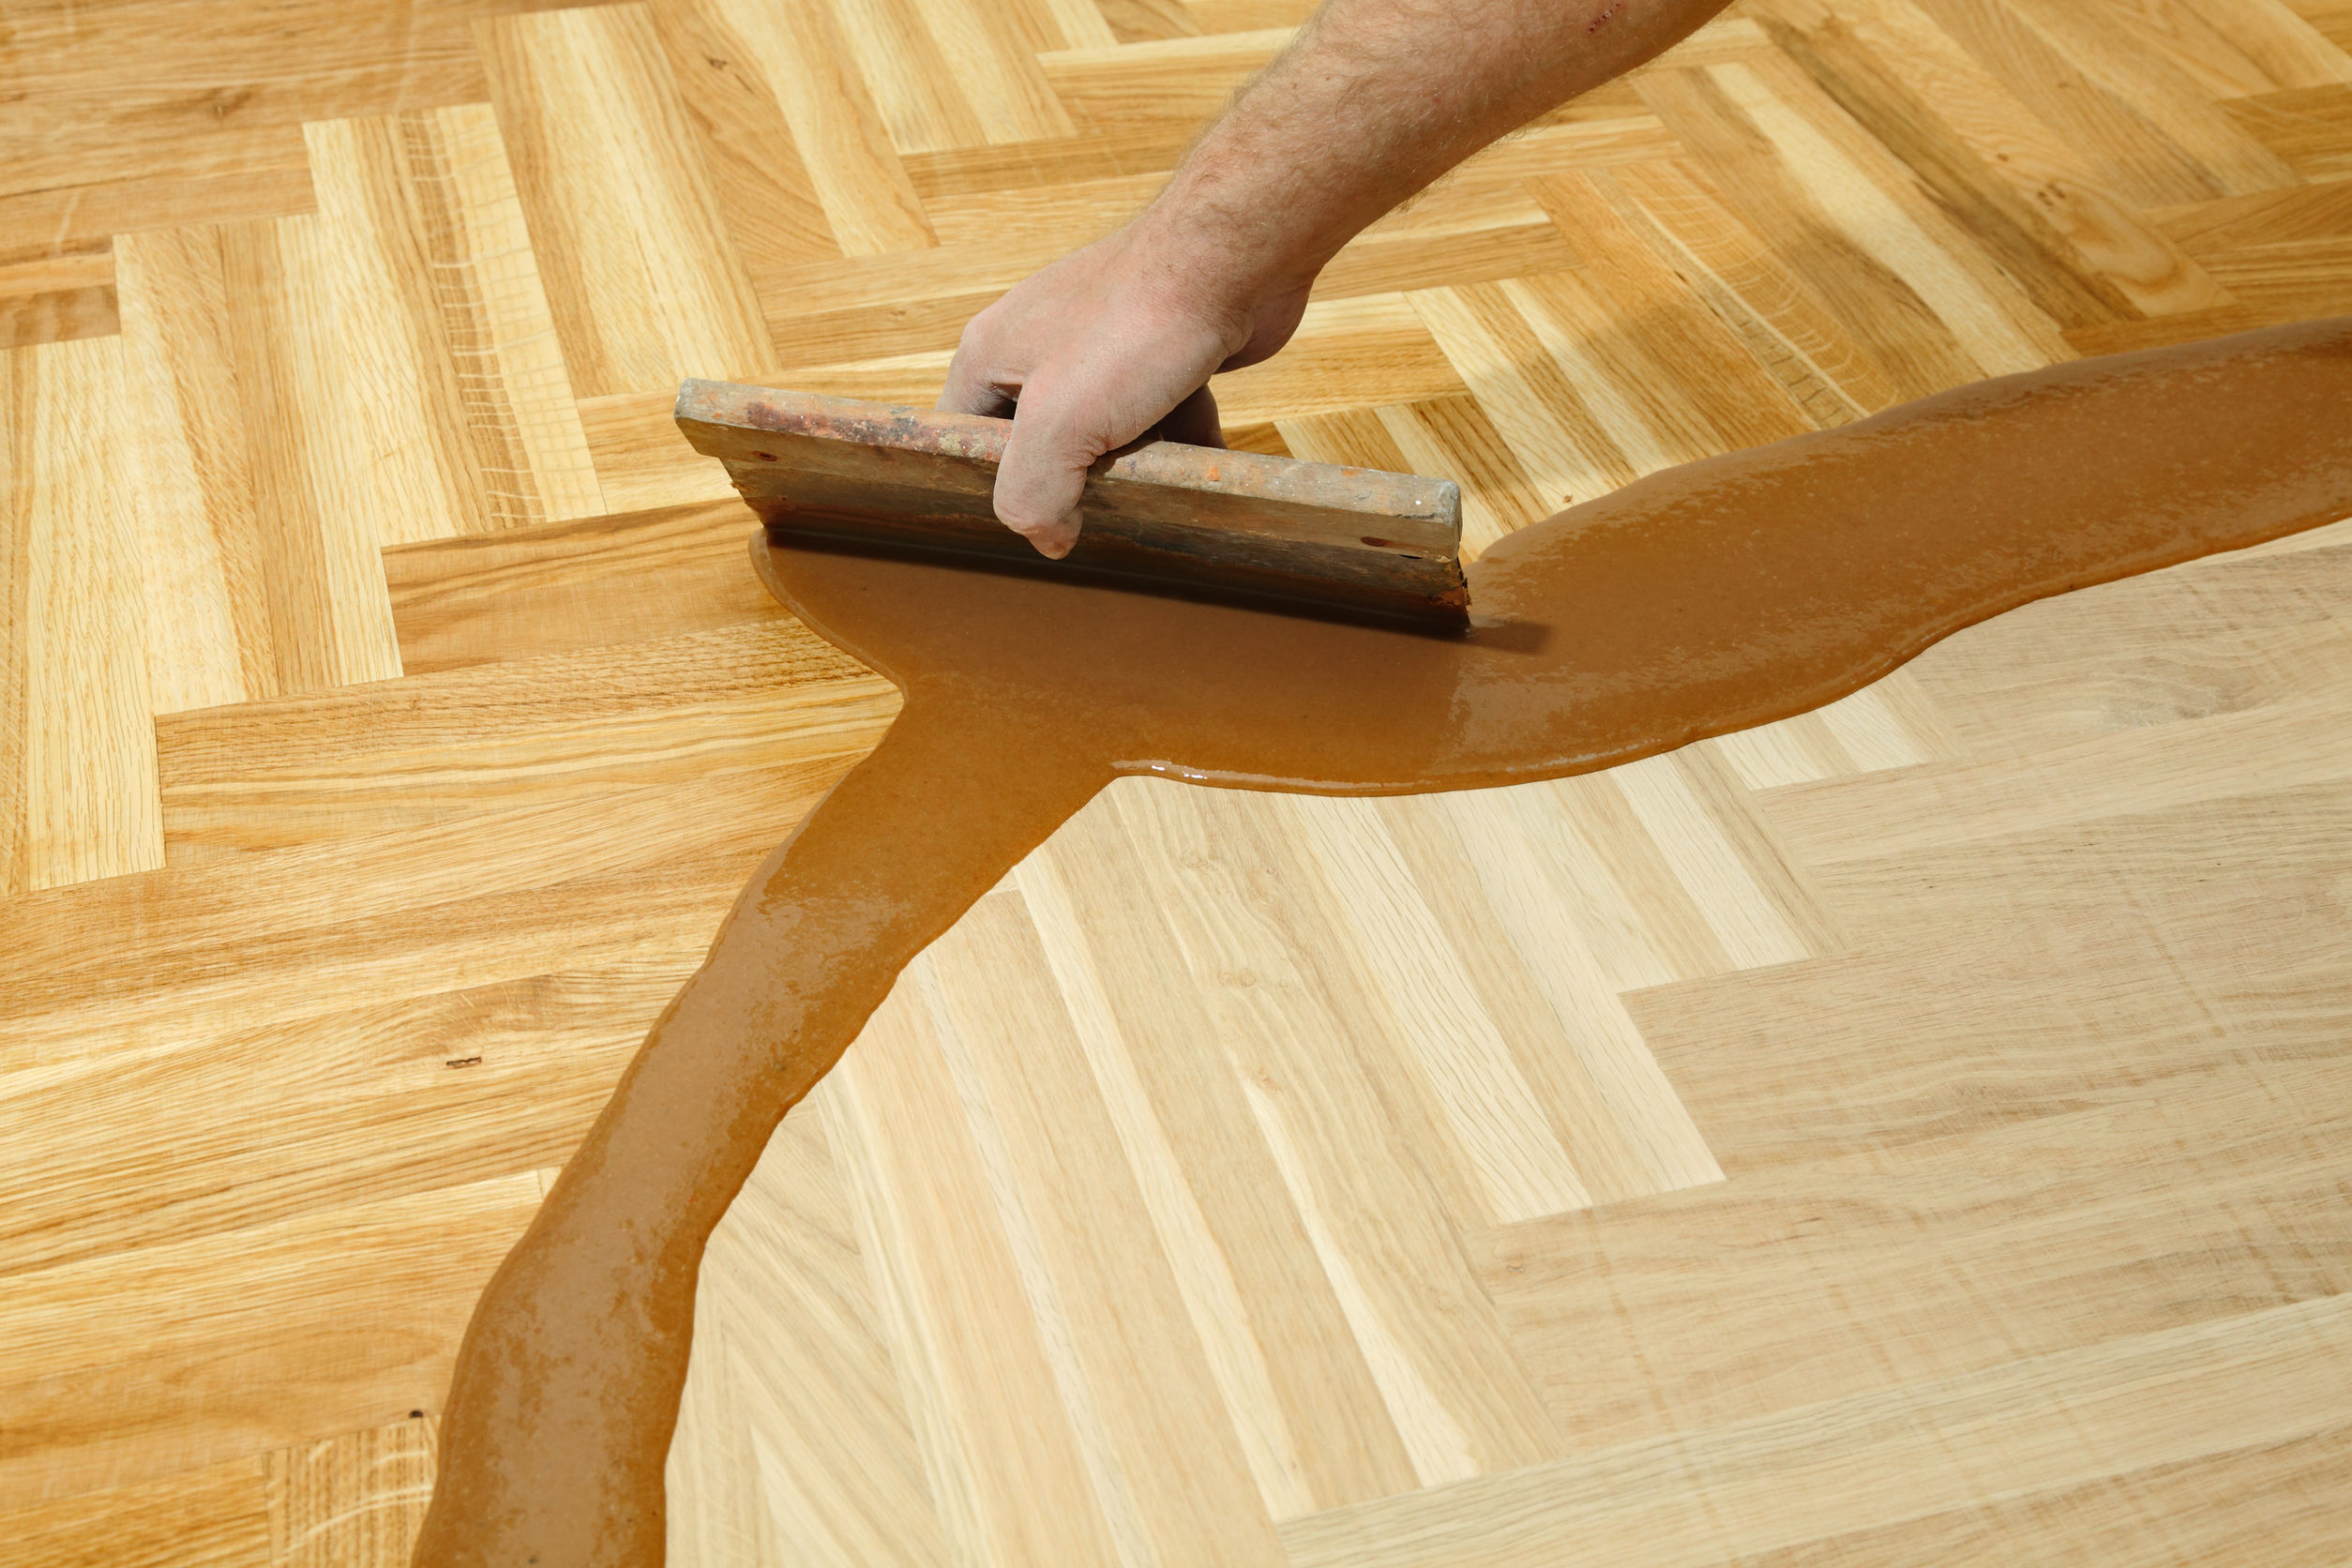 24527478 - varnishing of oak parquet floor, workers hand and tool